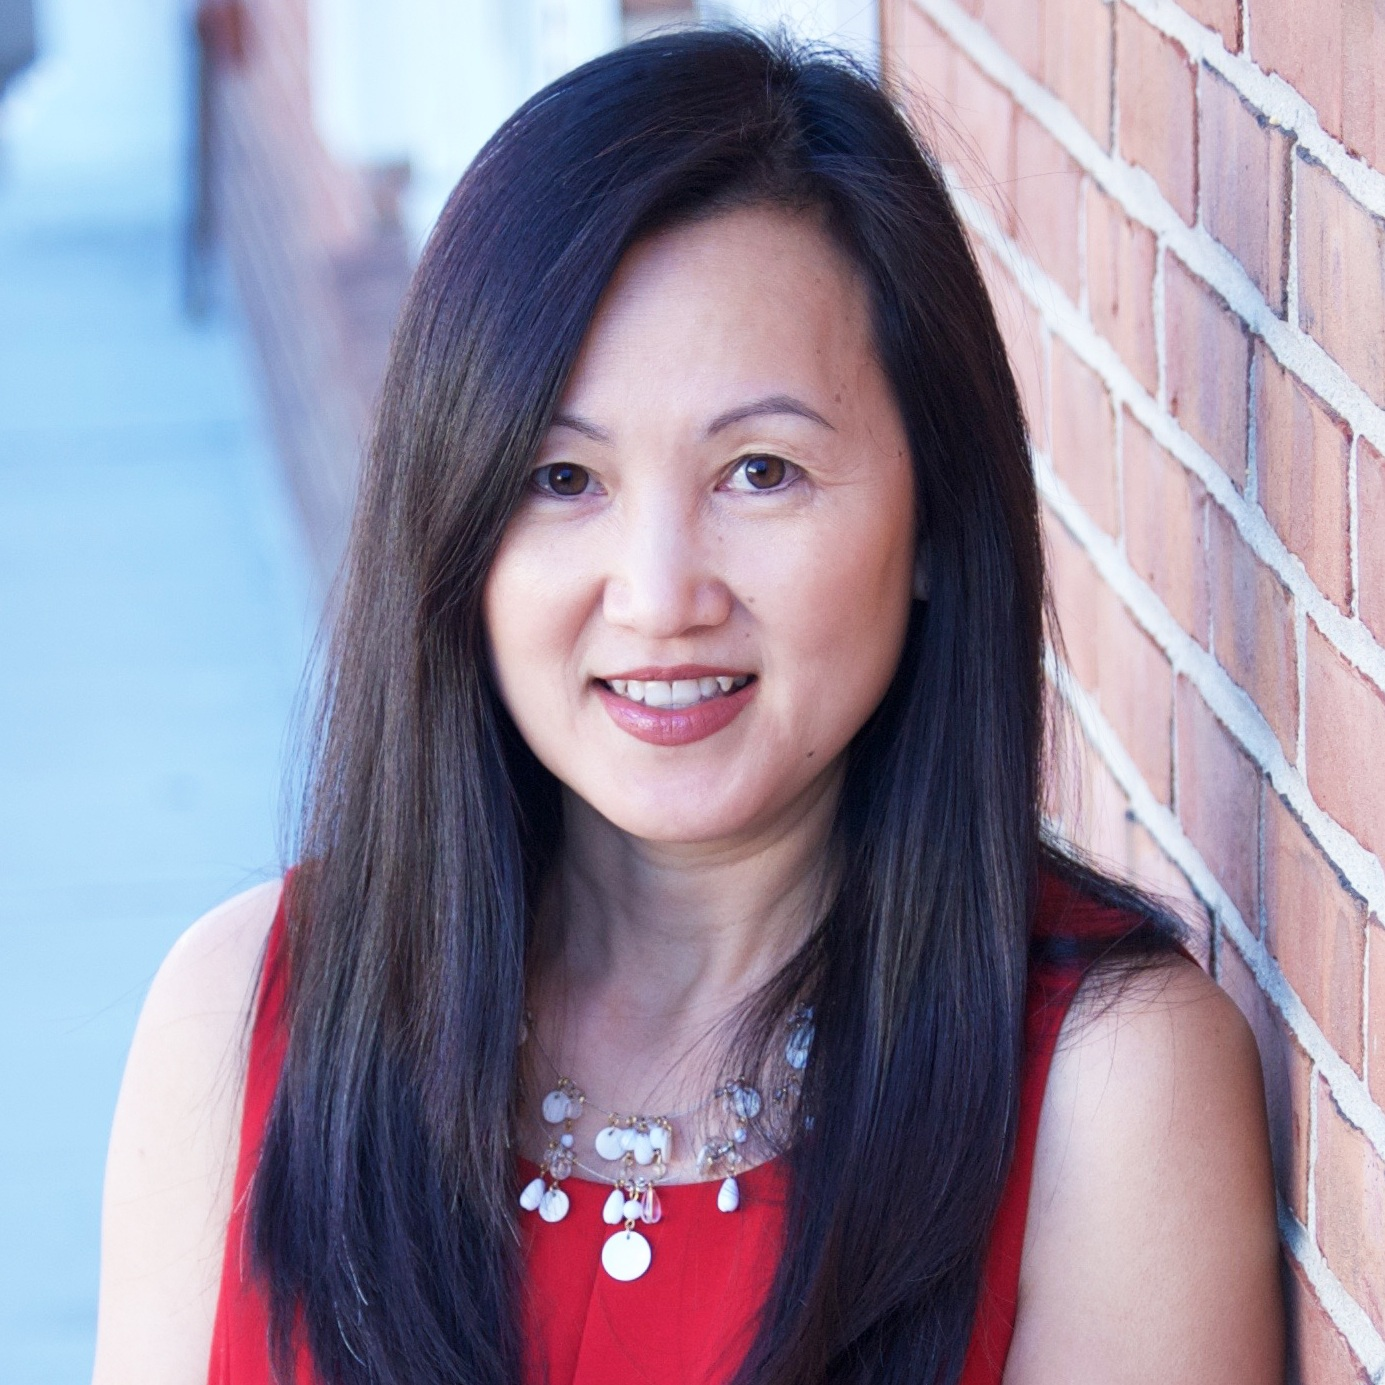 As a C-Suite executive turned Wealth Advisor, Elaine Lee understands being a corporate executive brings wealth challenges. She helps her clients simplify their financial lives with customized strategies so that can pursue what's important to them.